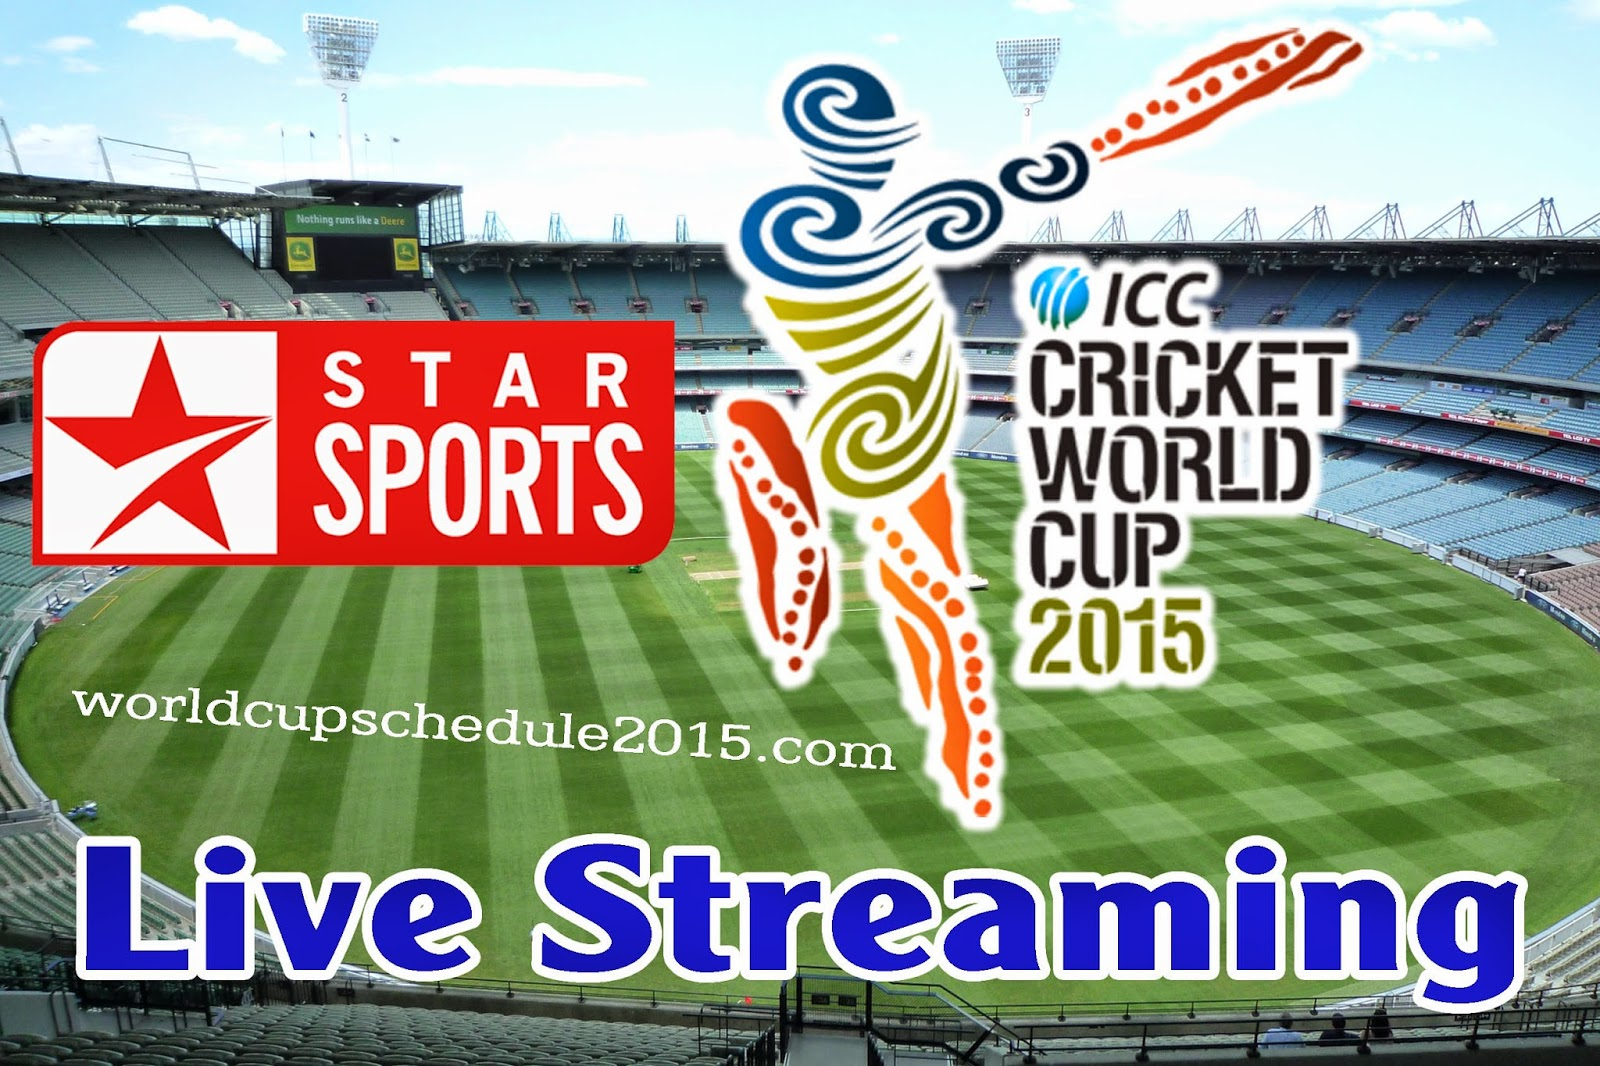 Cricket World Cup 2015 Live Streaming, TV Channel Broadcaster | ICC ...